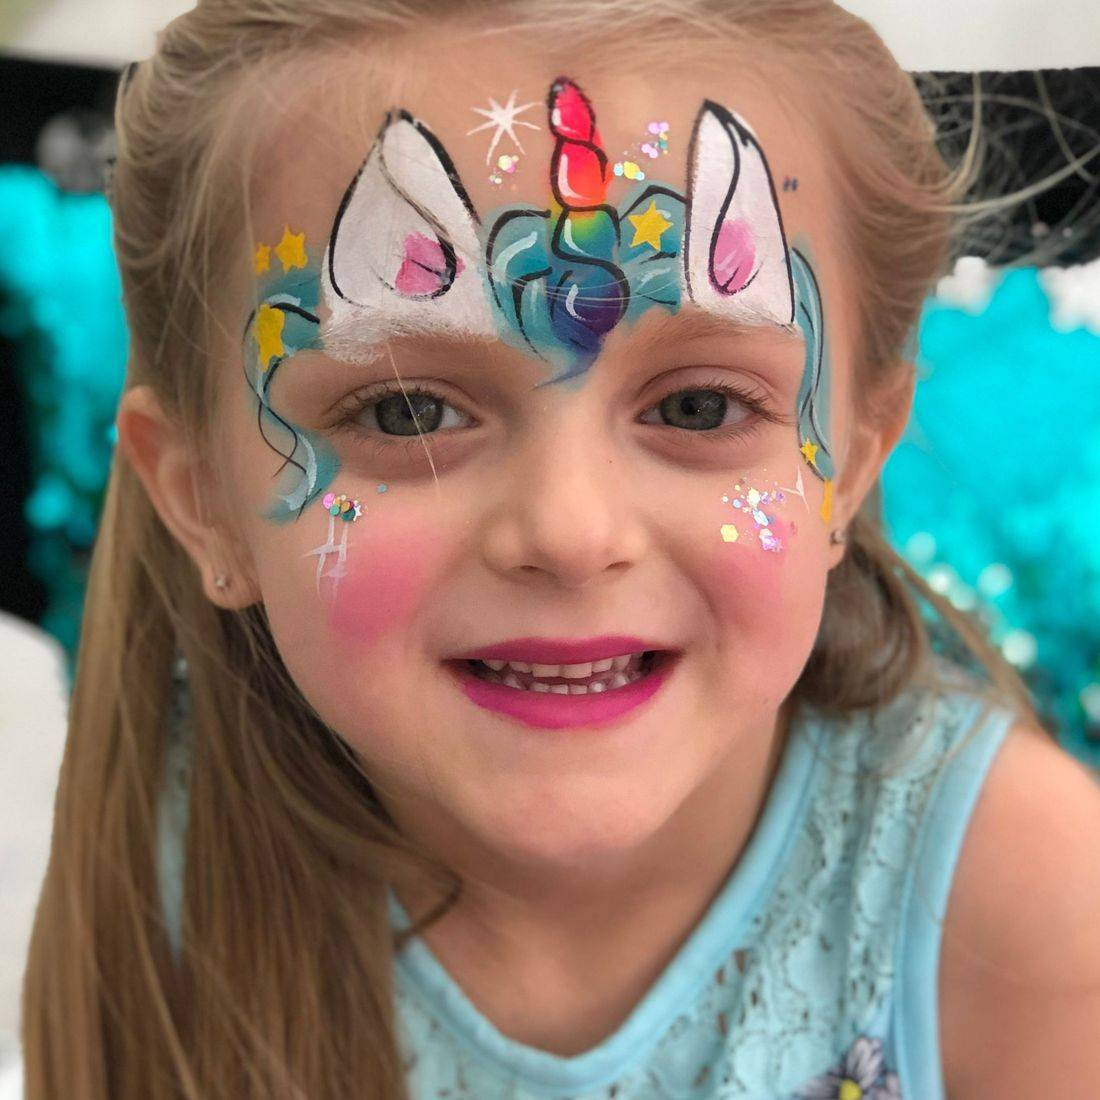 Chicago face painting, face painter, children's face painting services,  emoji painting,